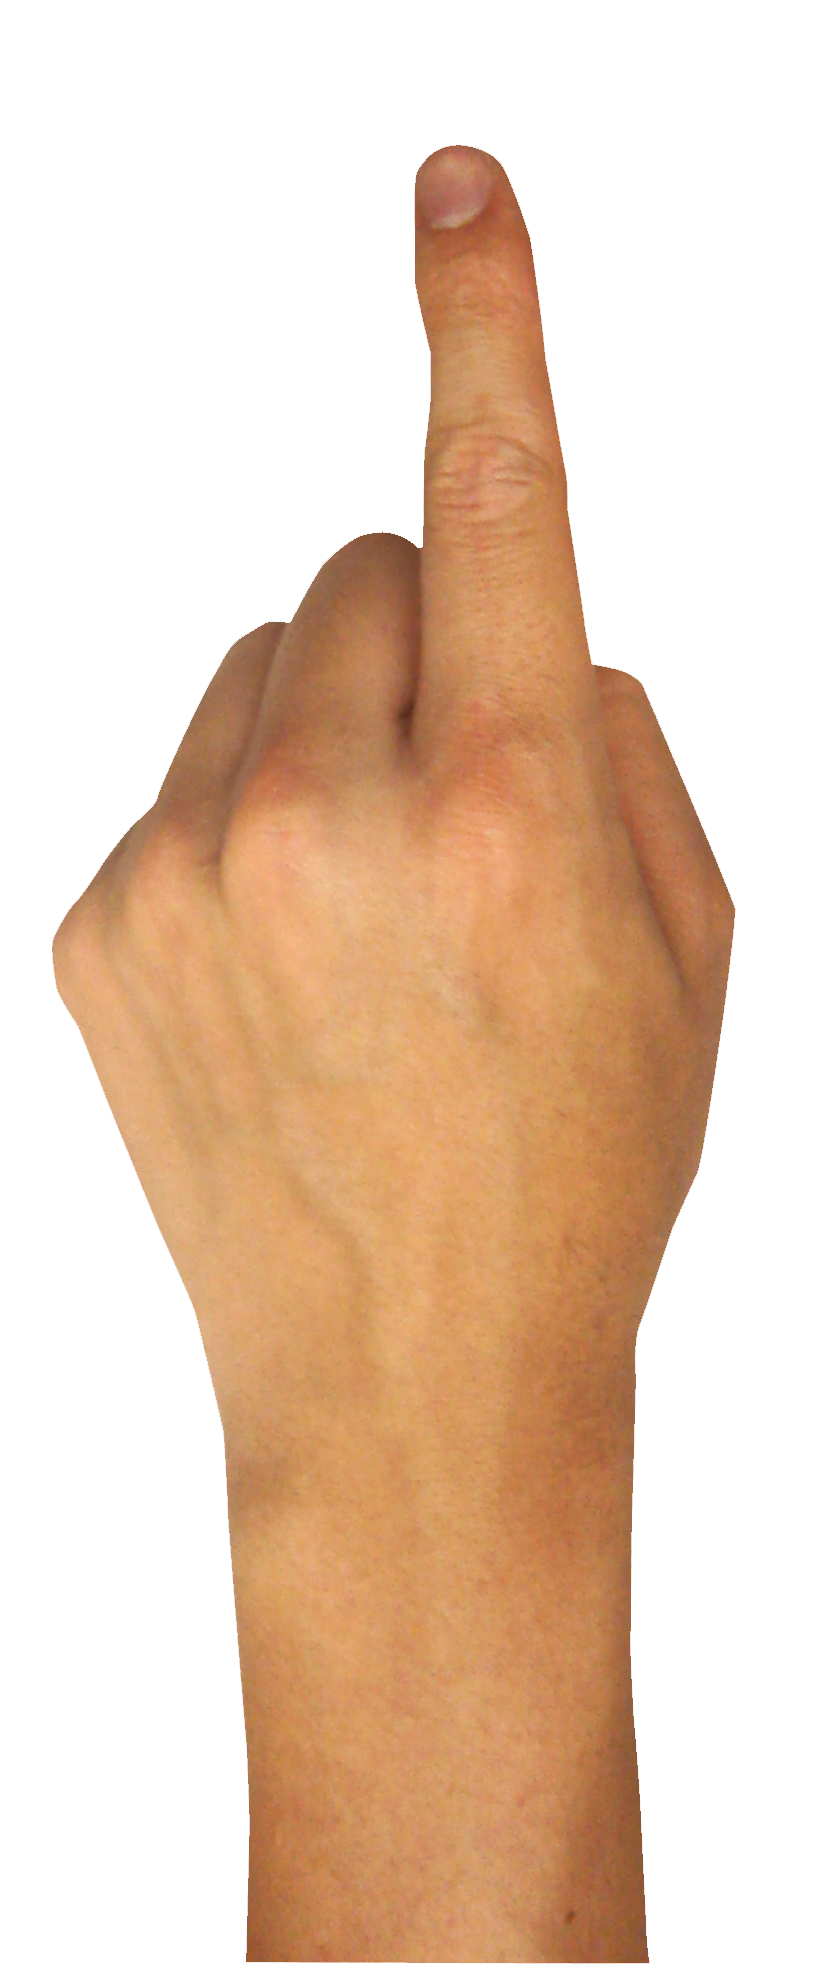 finger png by DIGITALWIDERESOURCE finger png by DIGITALWIDERESOURCE - Finger PNG